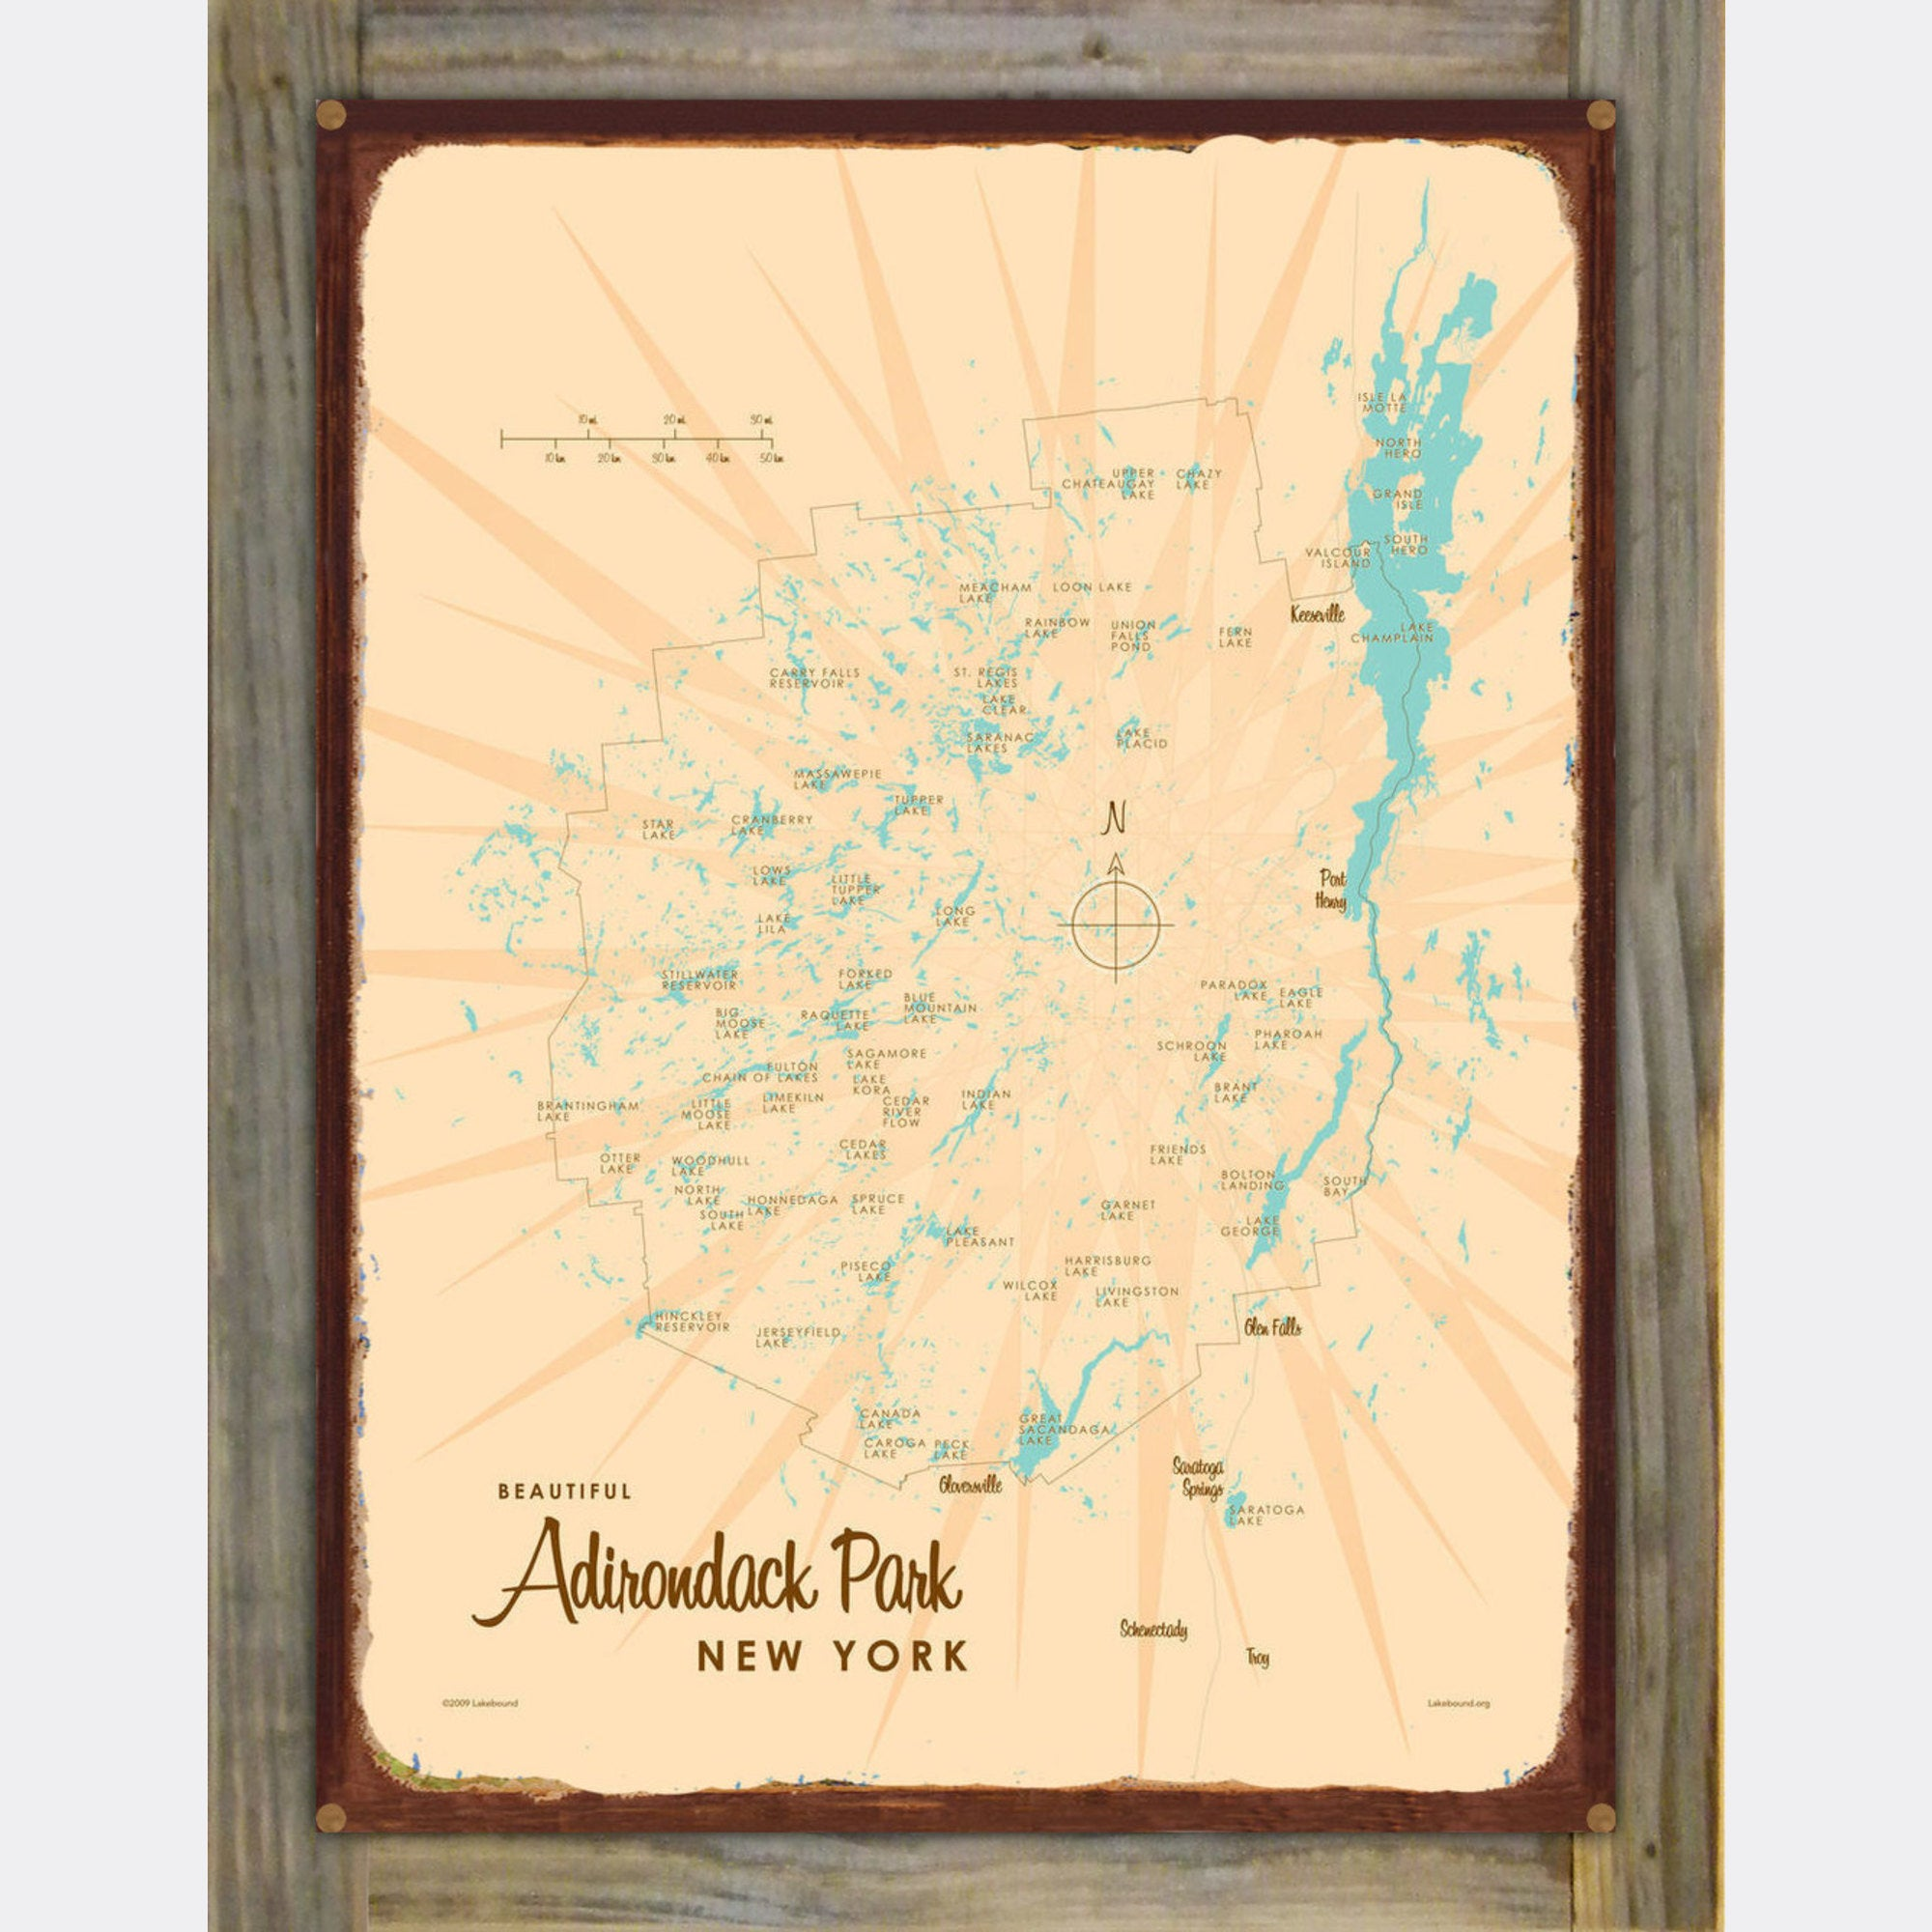 Adirondack Park, New York, Wood-Mounted Rustic Metal Sign Map Art